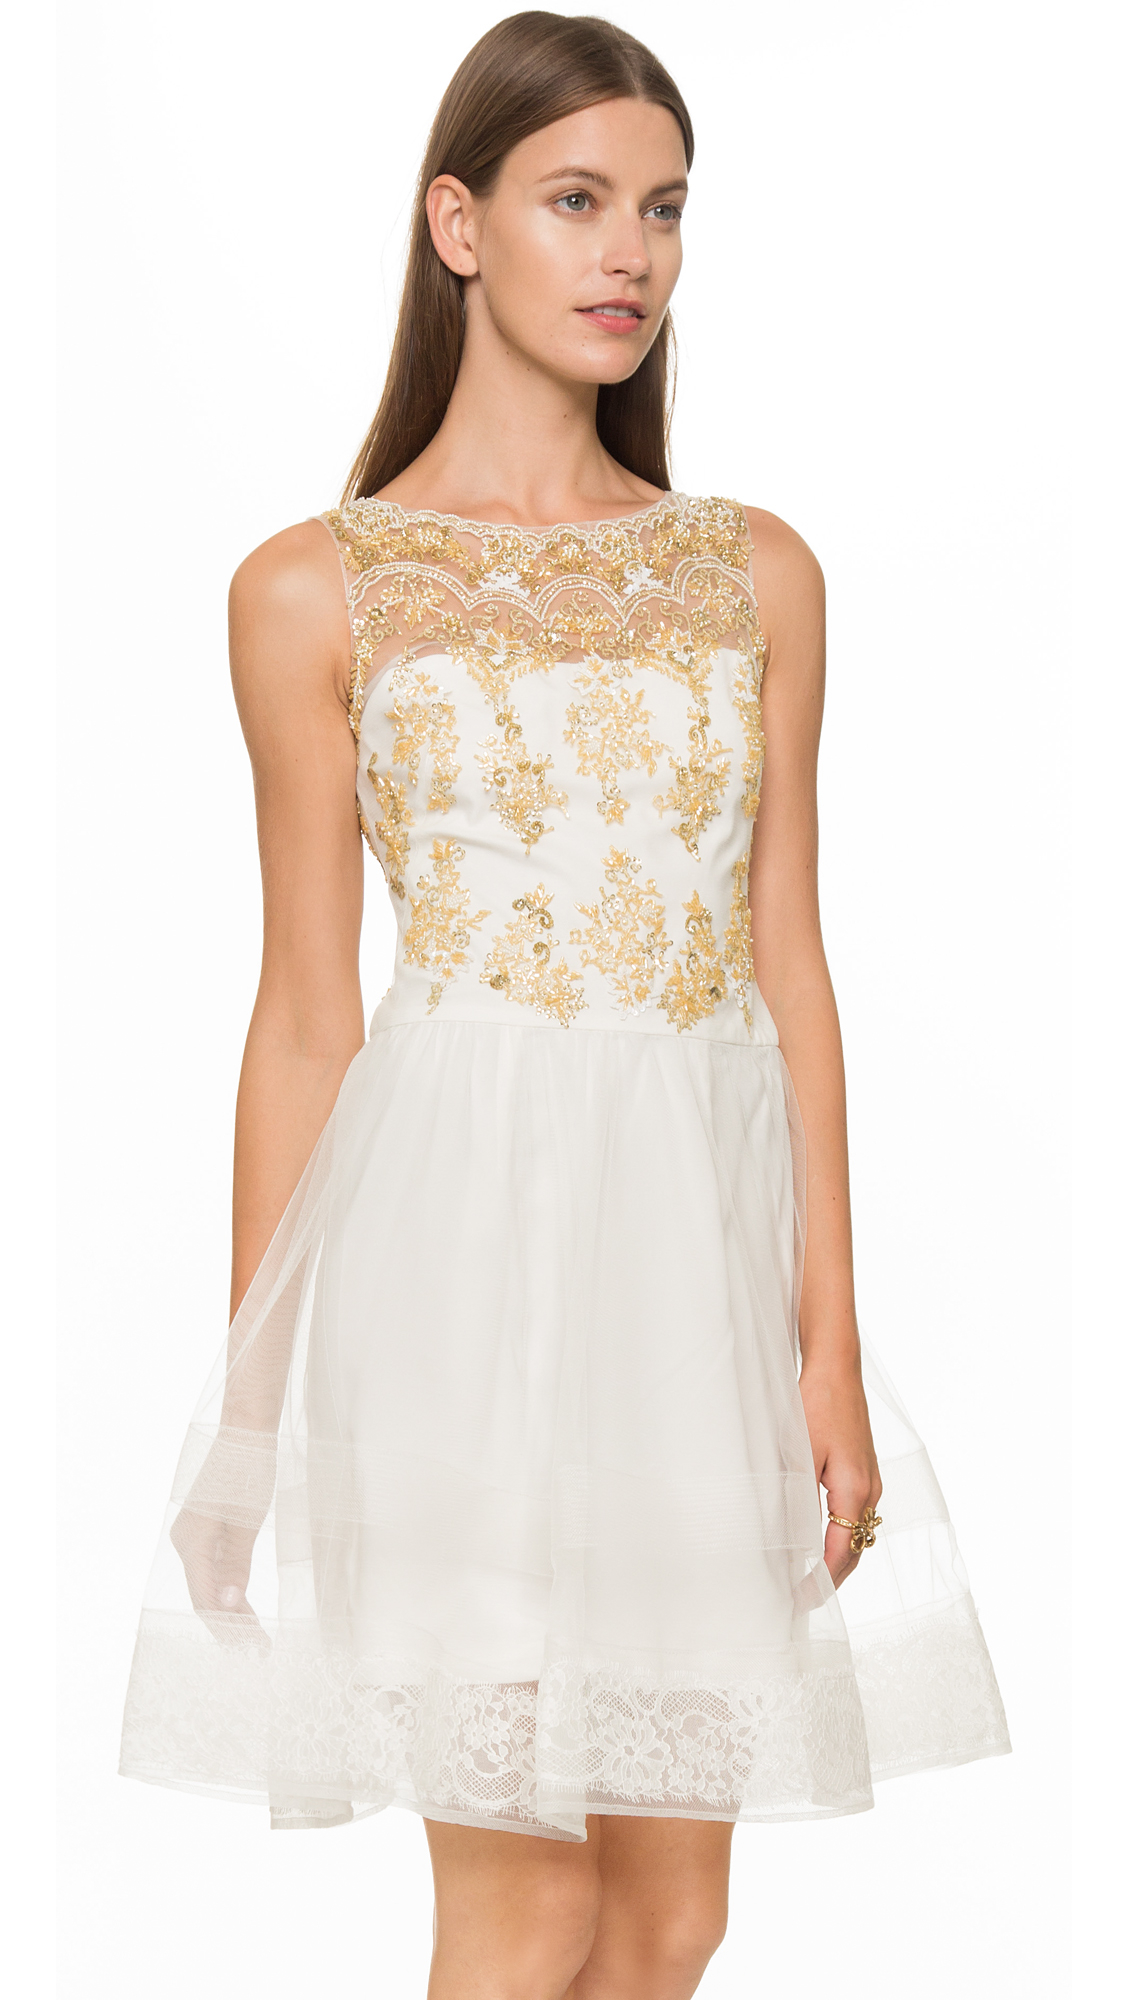 Notte by marchesa Sleeveless Lace Cocktail Dress White